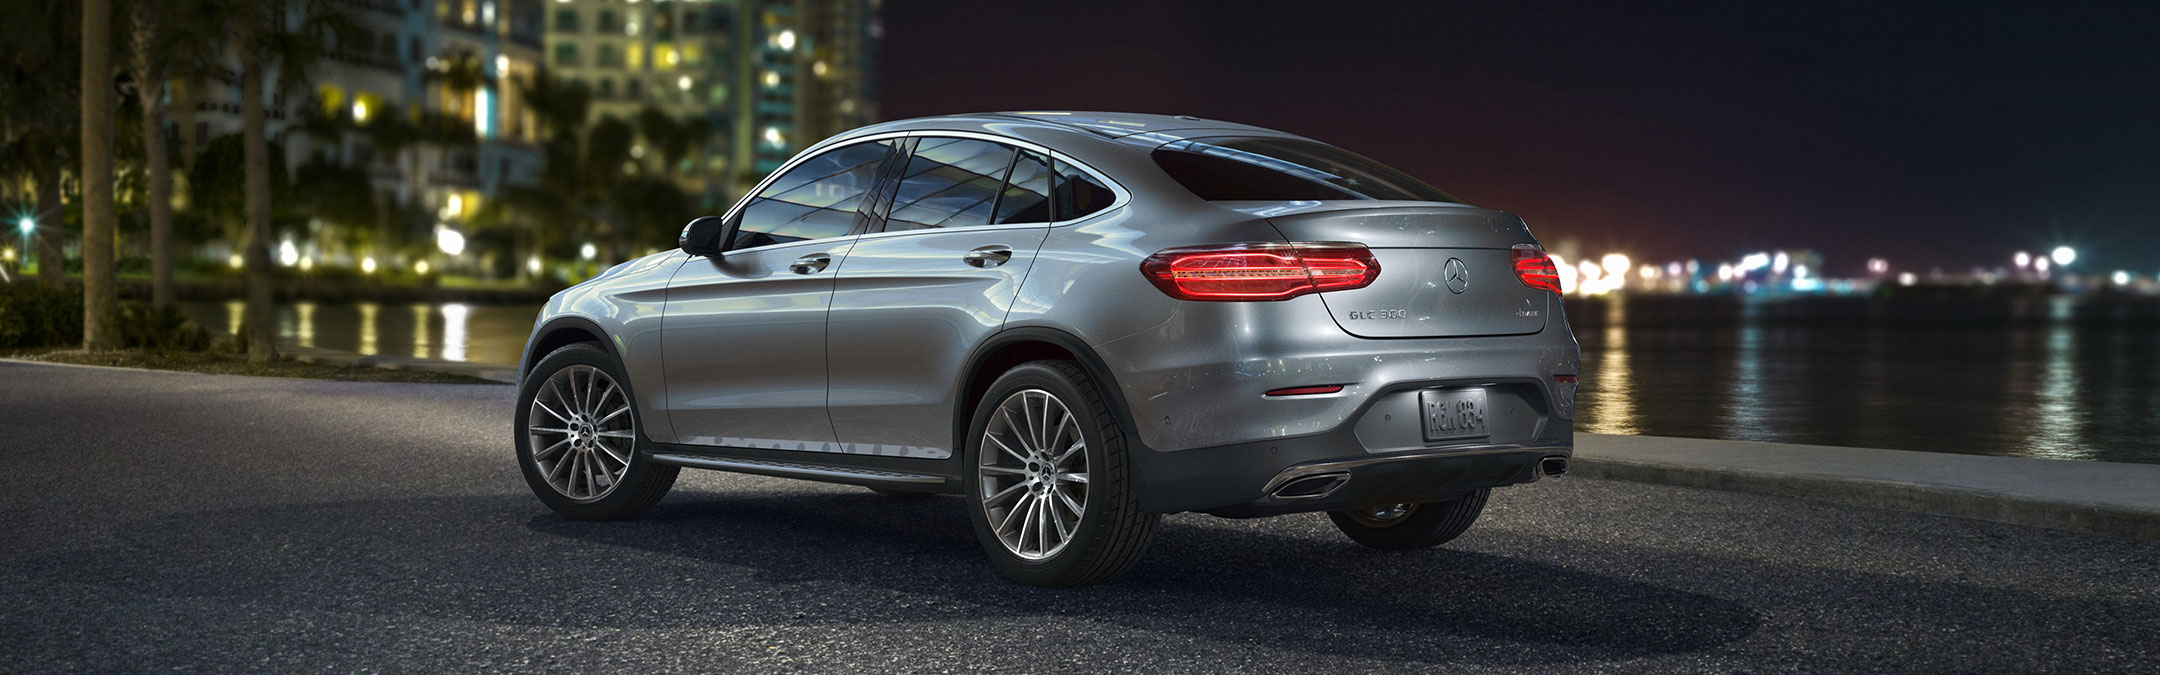 2018 Midsize Glc 4matic Coupe Mercedes Benz